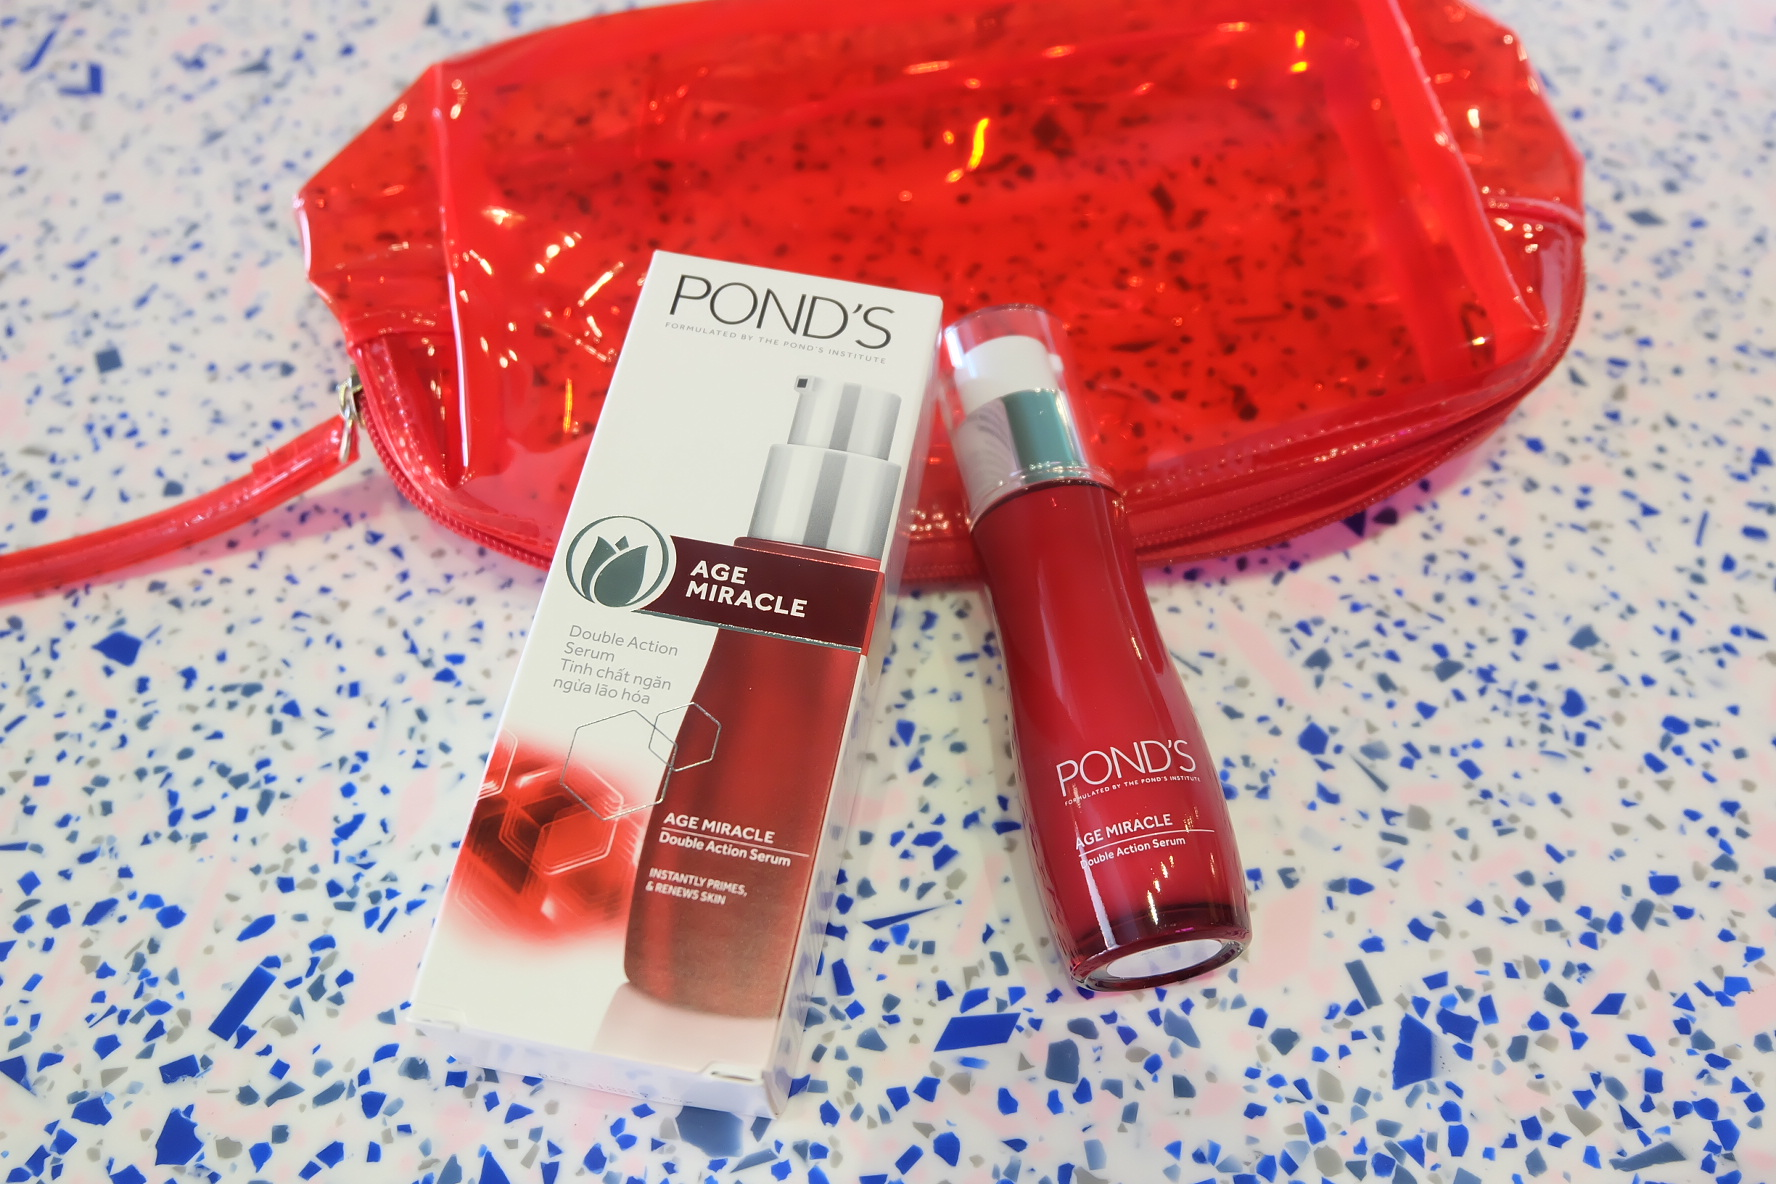 Review: POND'S Age Miracle Double Action Serum